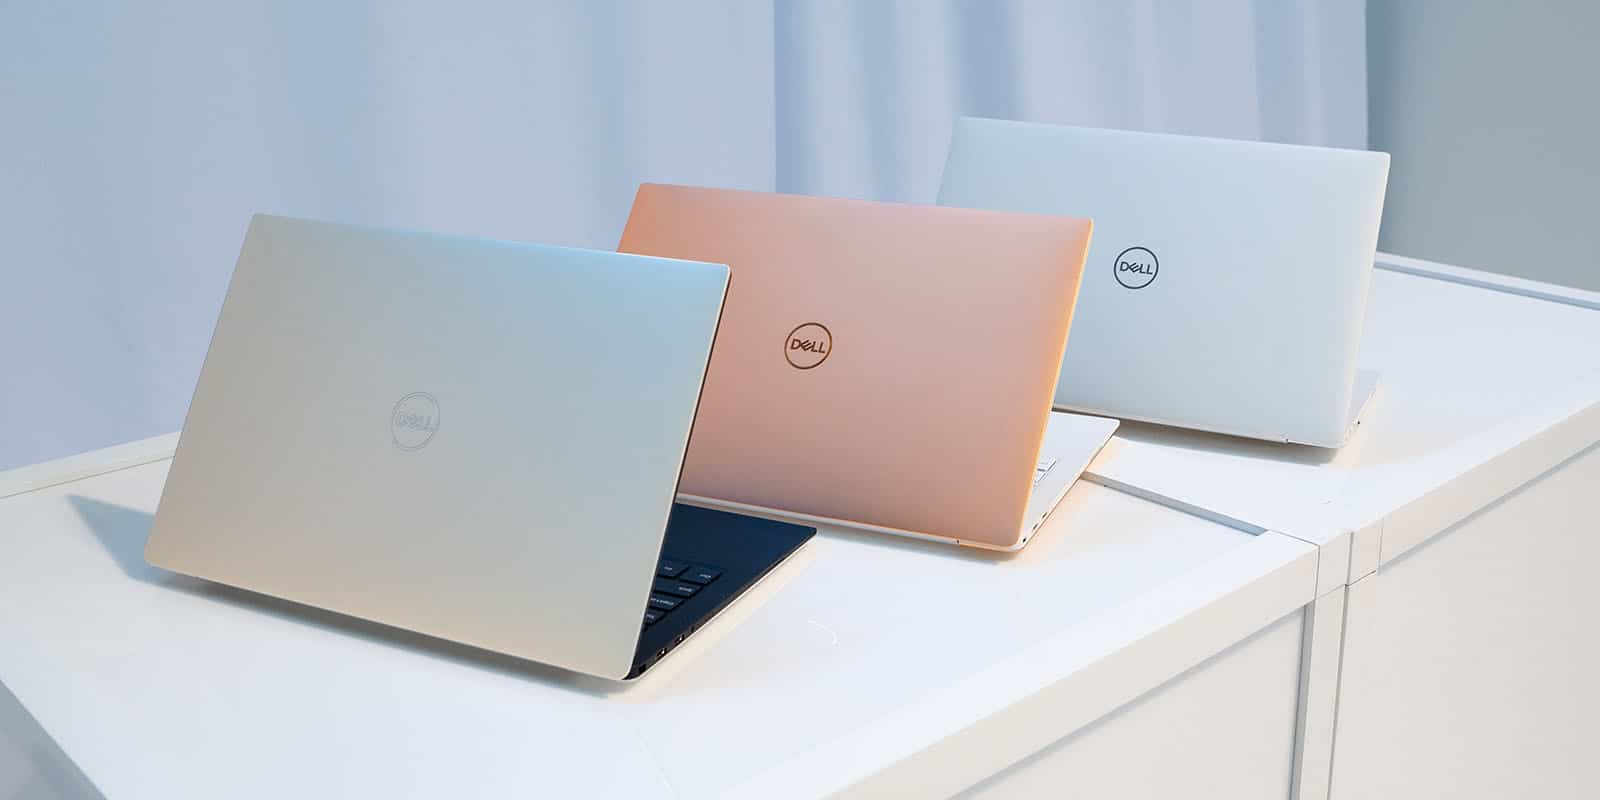 New Dell Xps 13 9380 Vs Xps 13 9370 My Laptop Guide